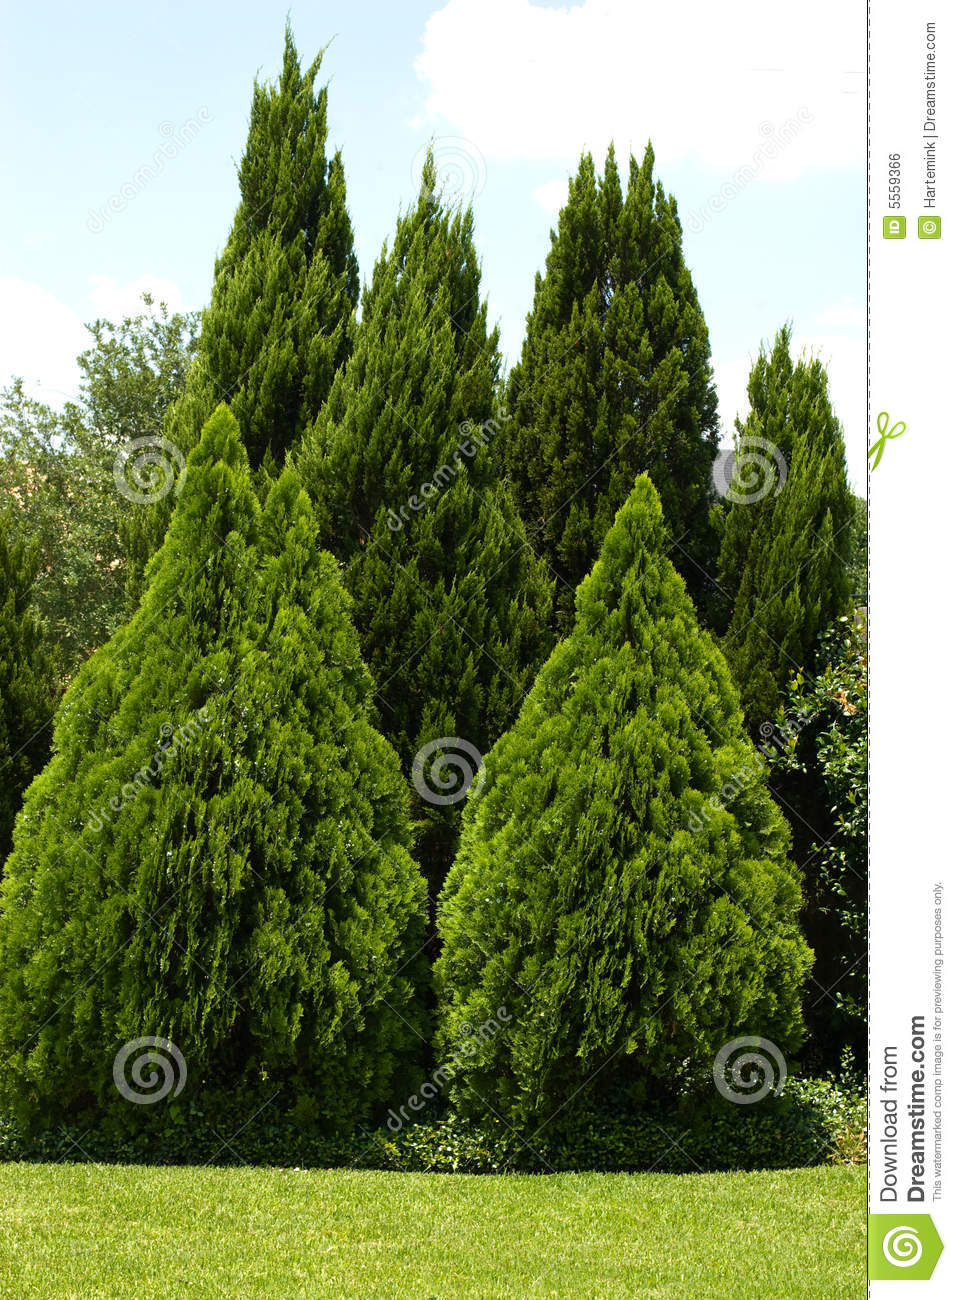 Evergreen Trees In Green Yard Stock Photo  Image of